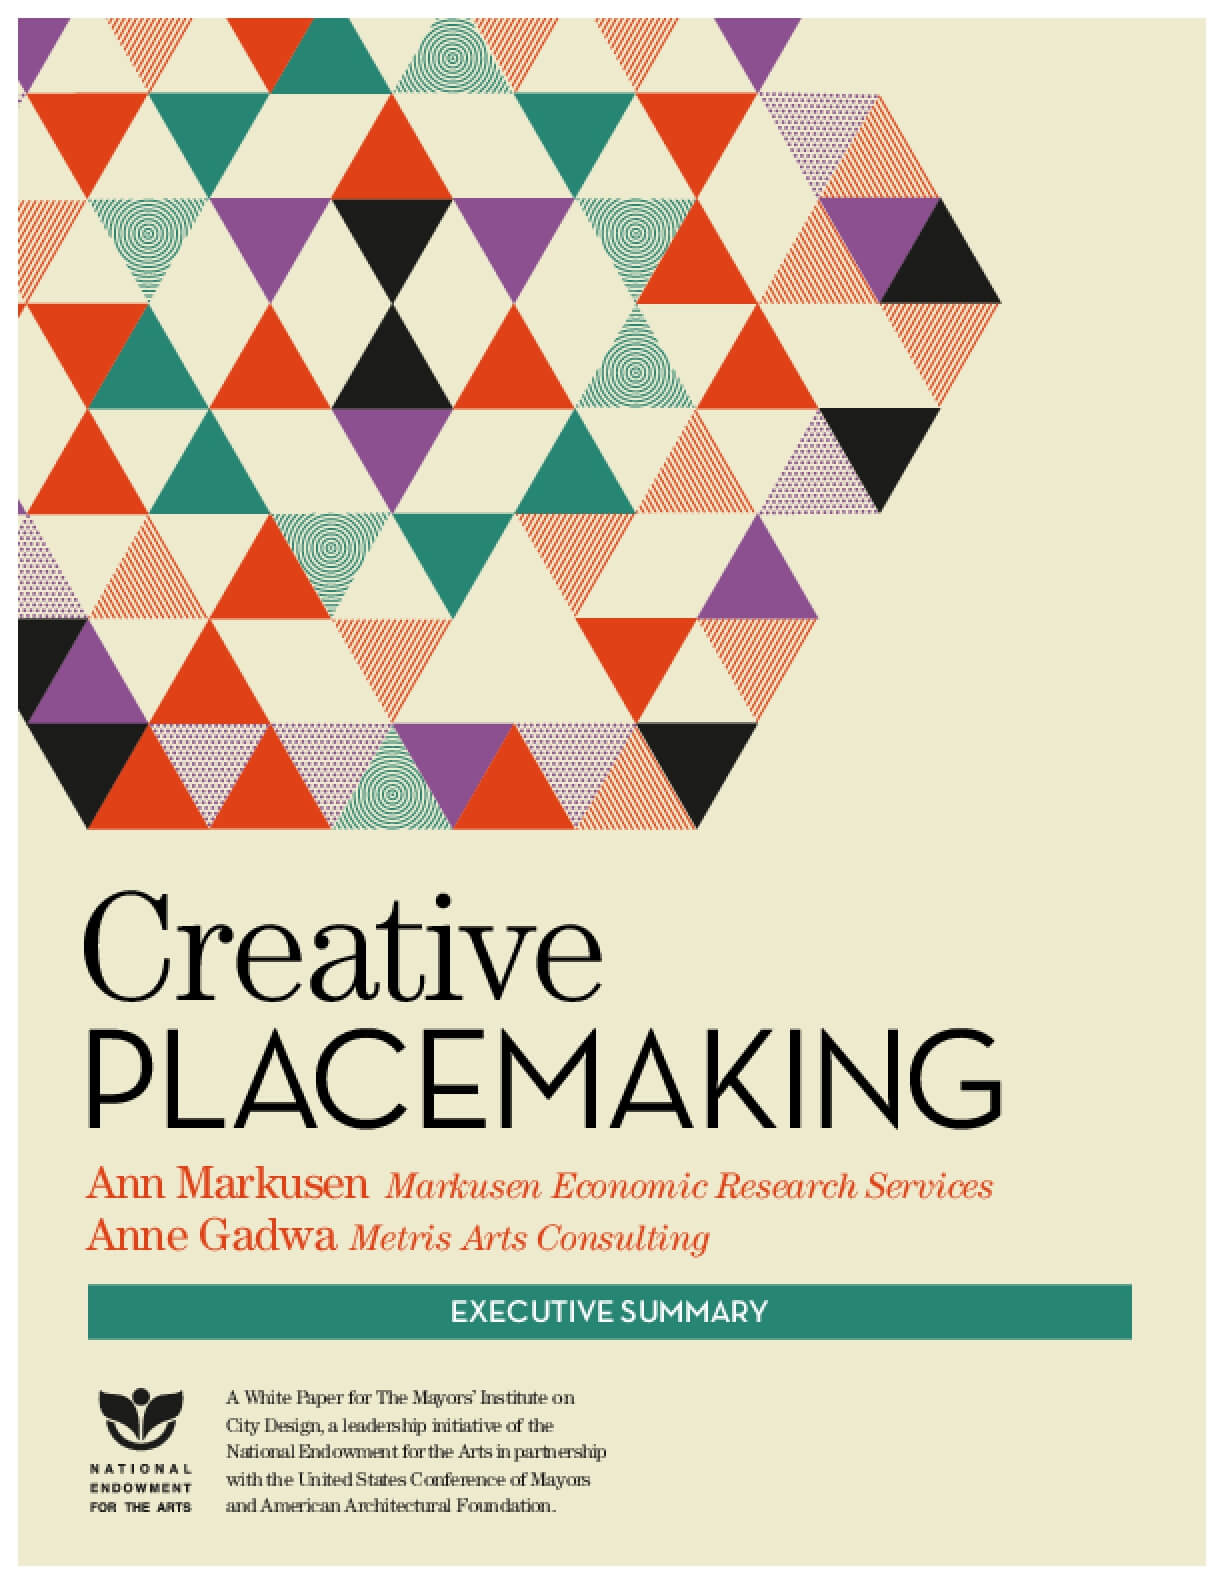 Creative Placemaking